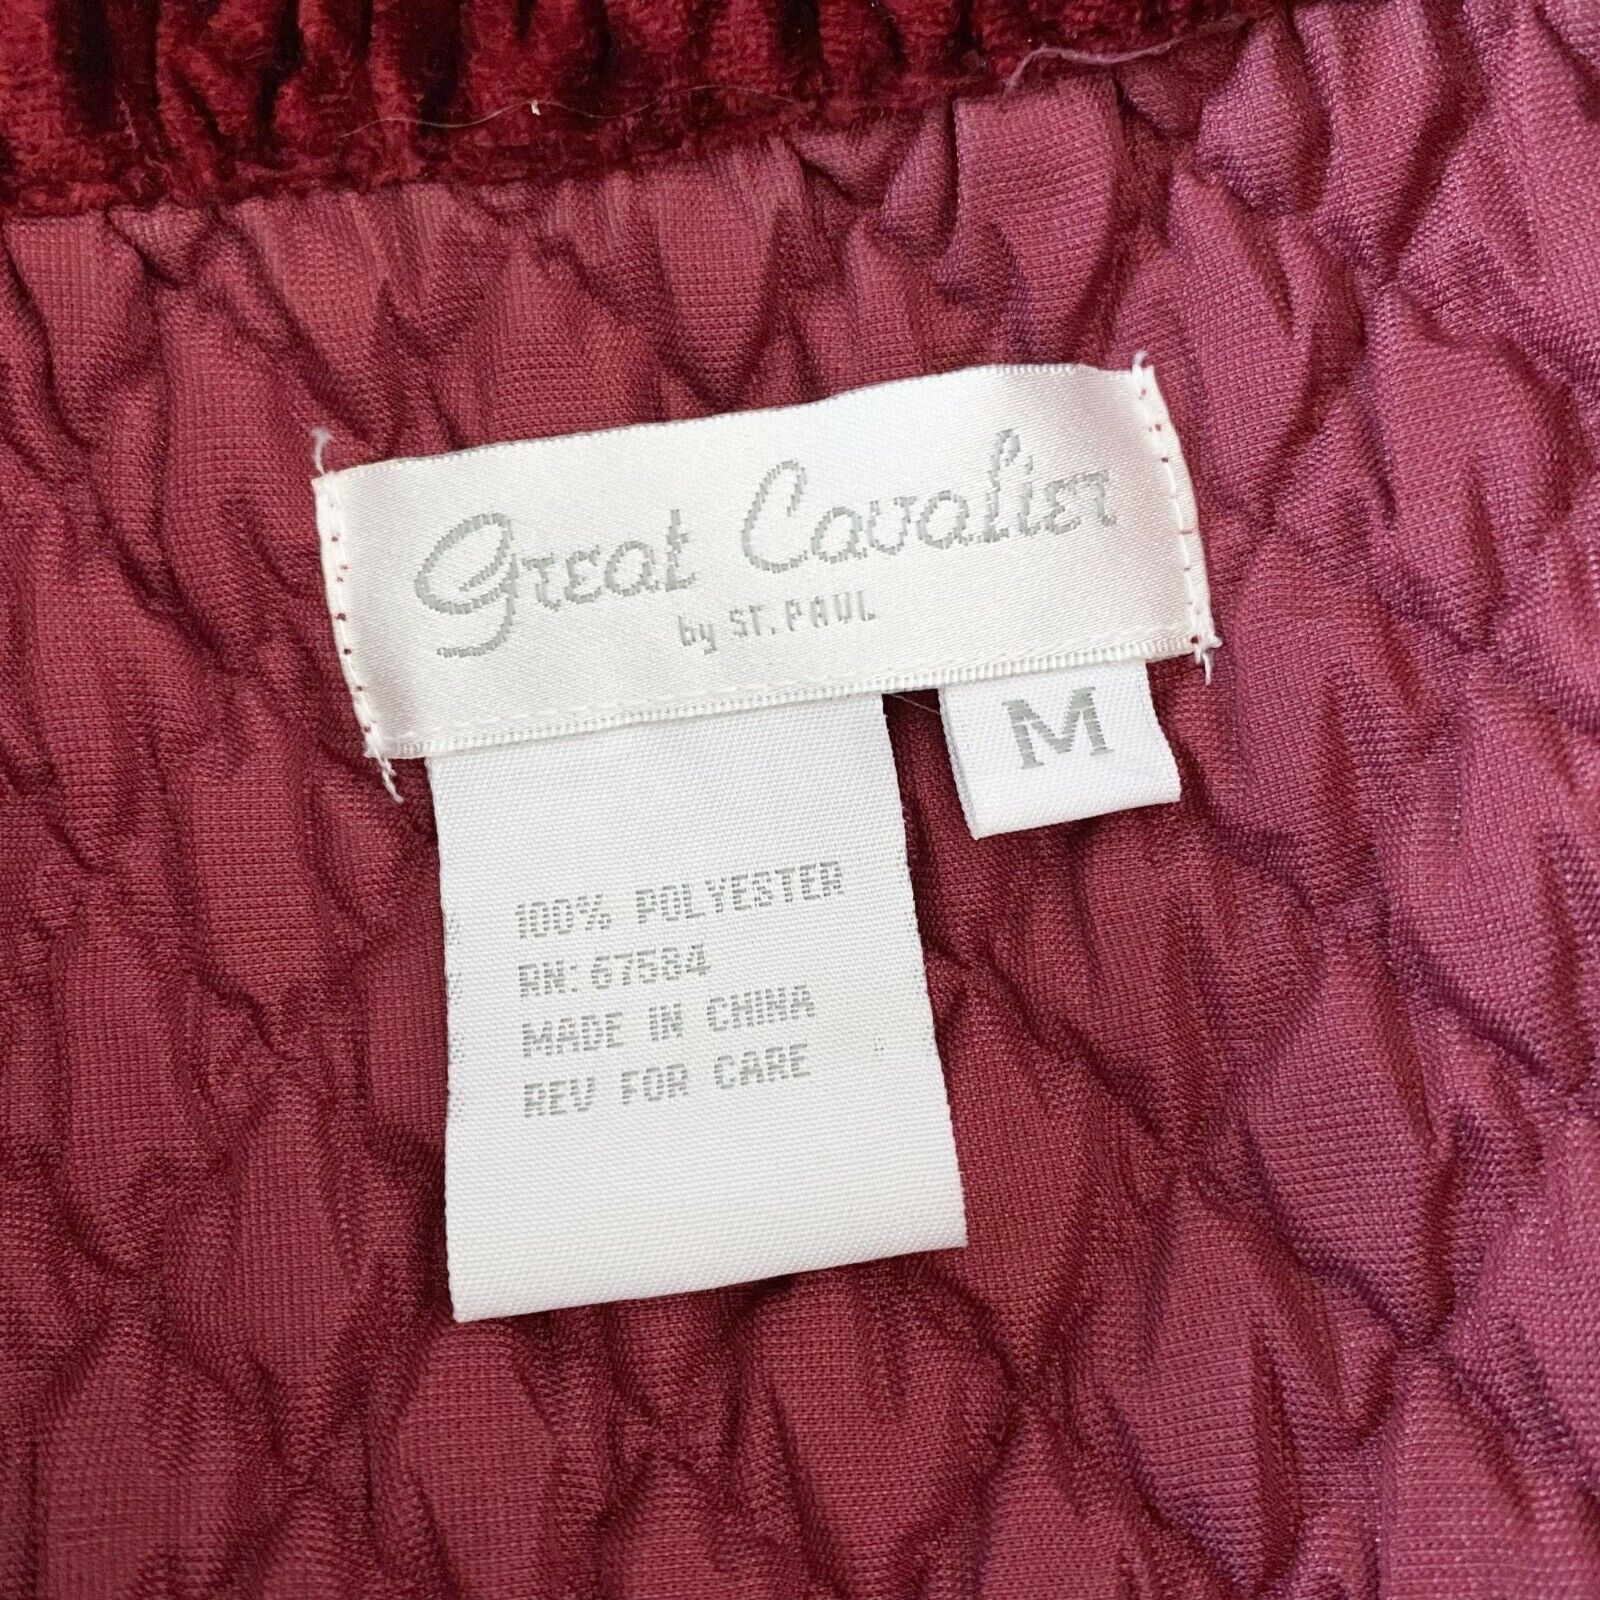 Vintage Great Cavalier by St. Paul Red Textured V… - image 4